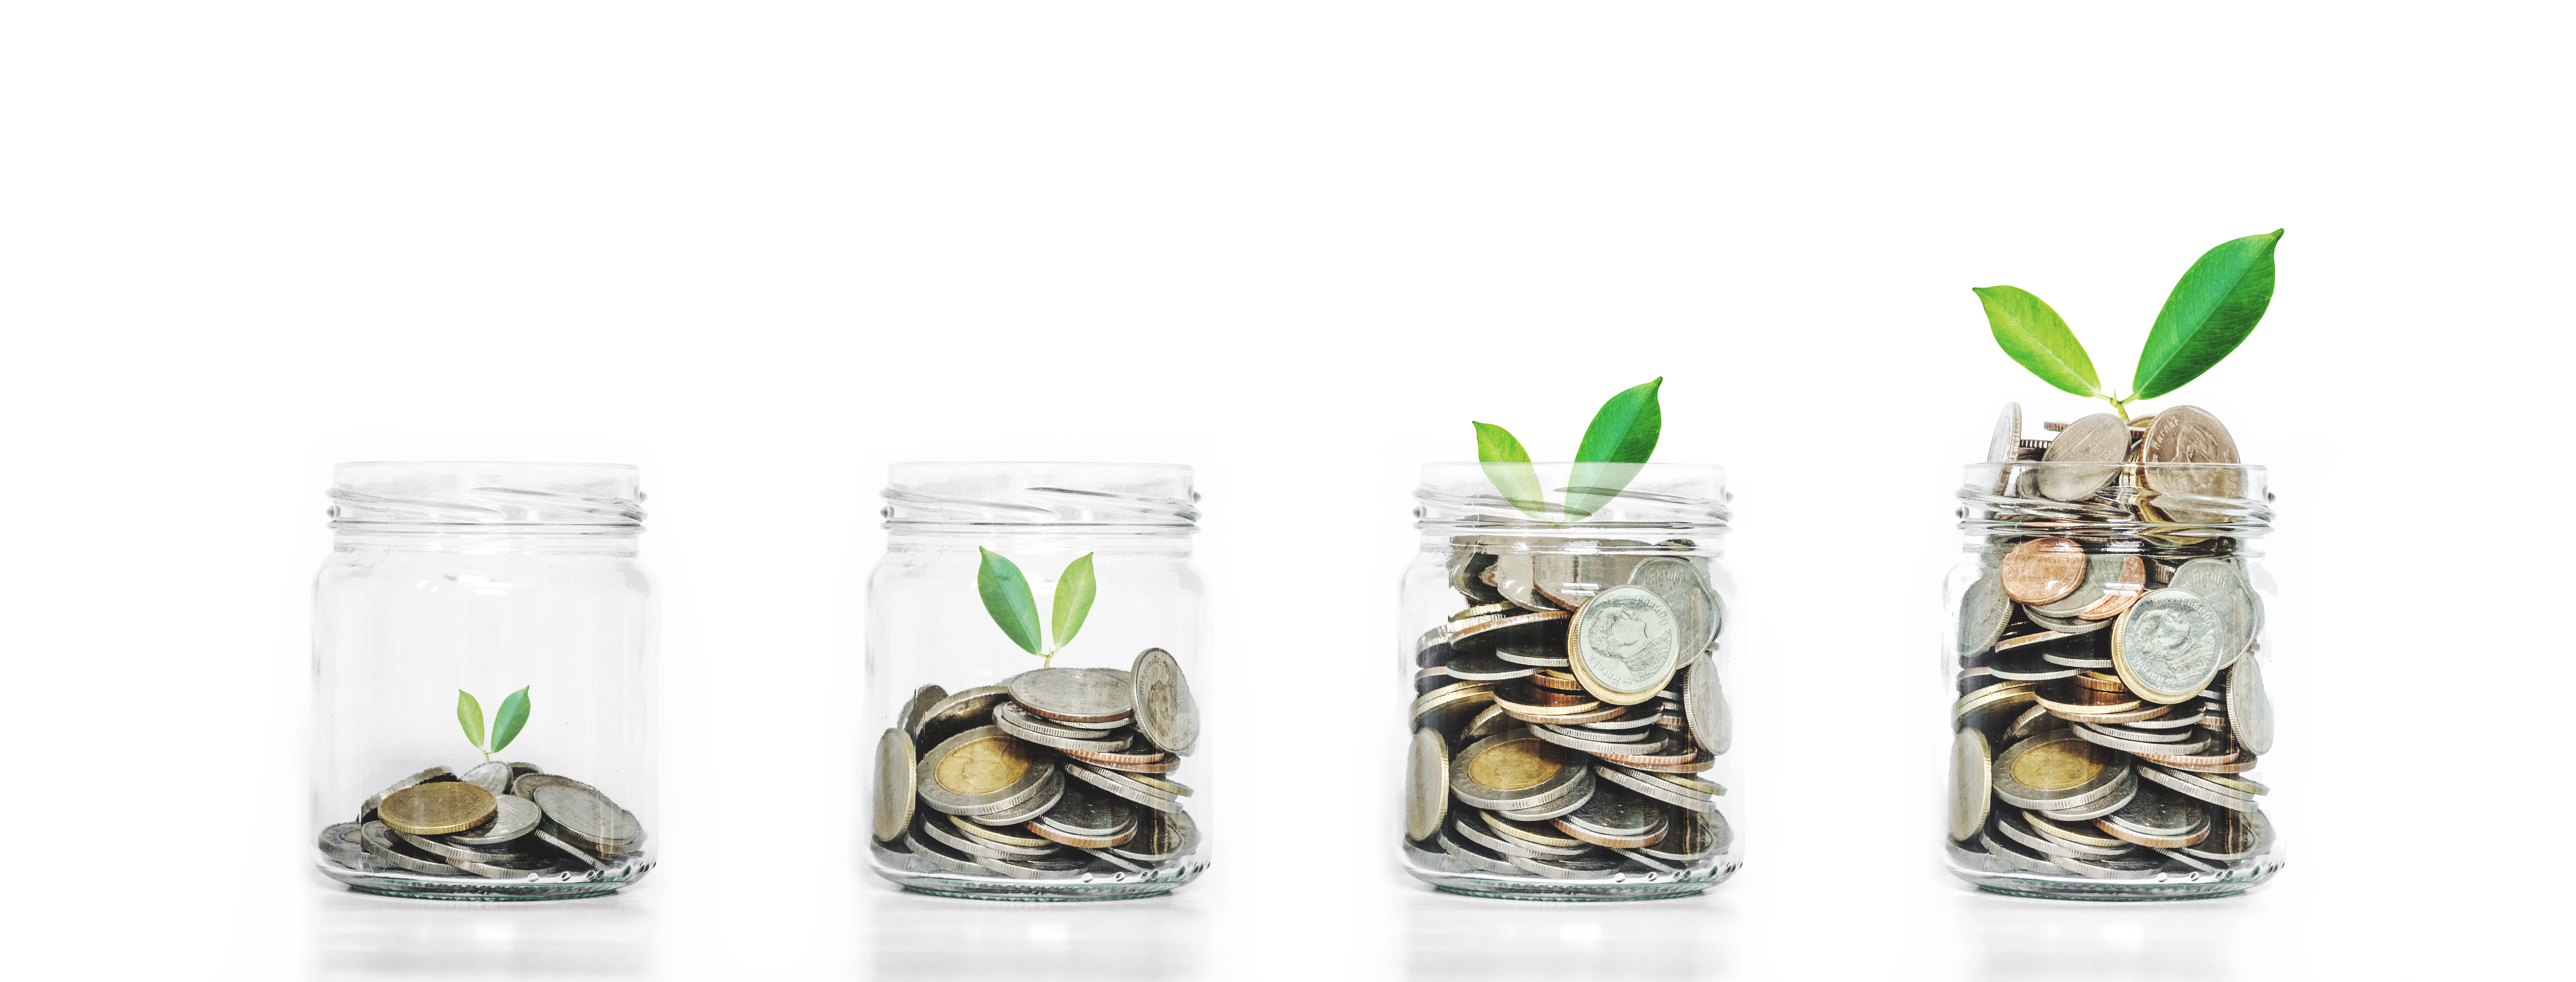 Understanding Pre-Seed and Seed Funding For Startups